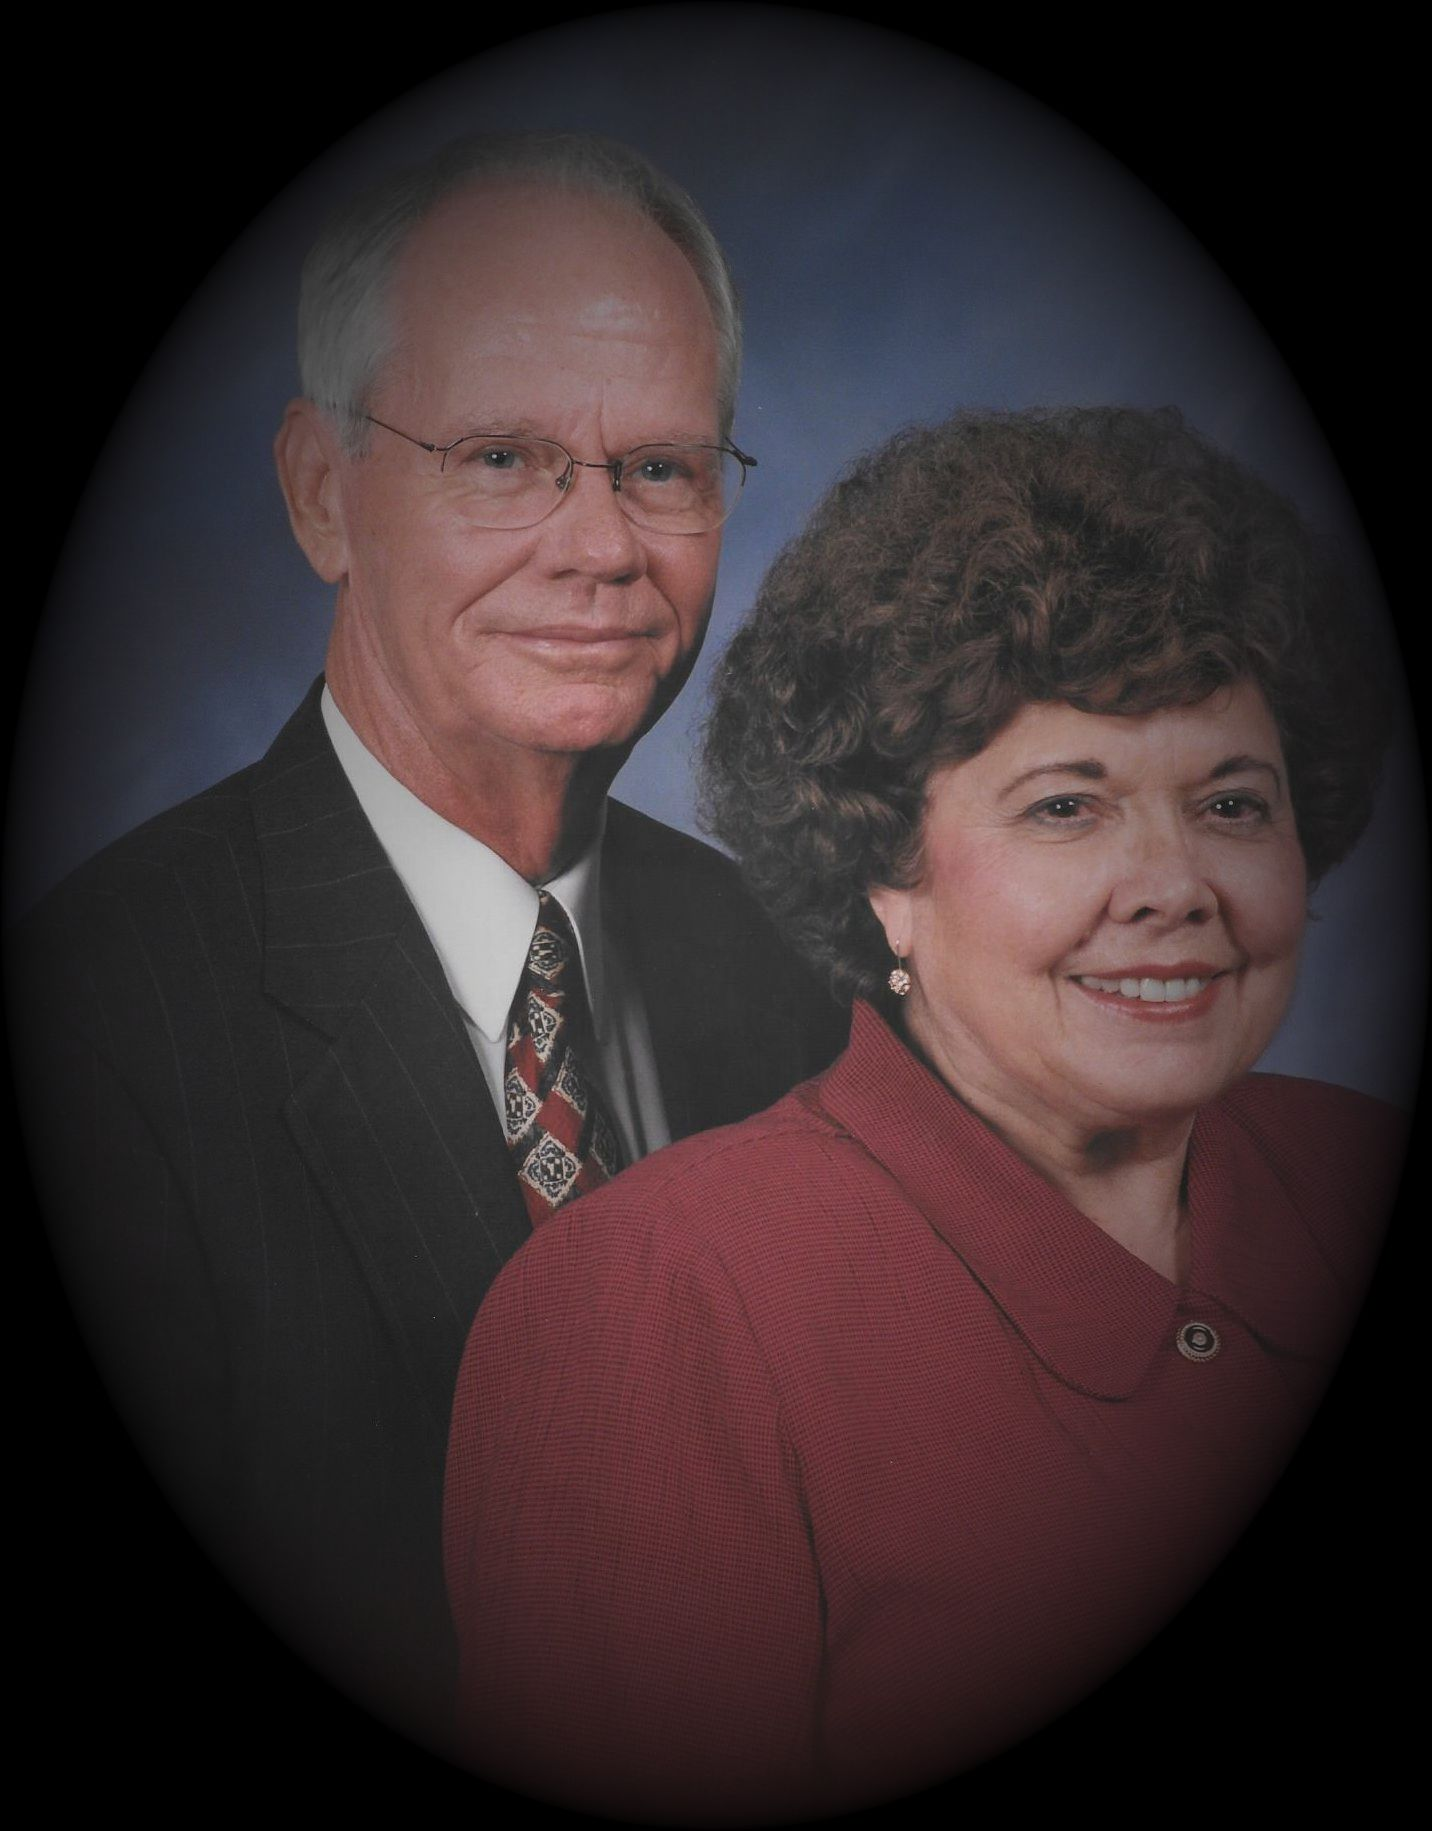 Obituary image of Dr. Ralph E. Brannon